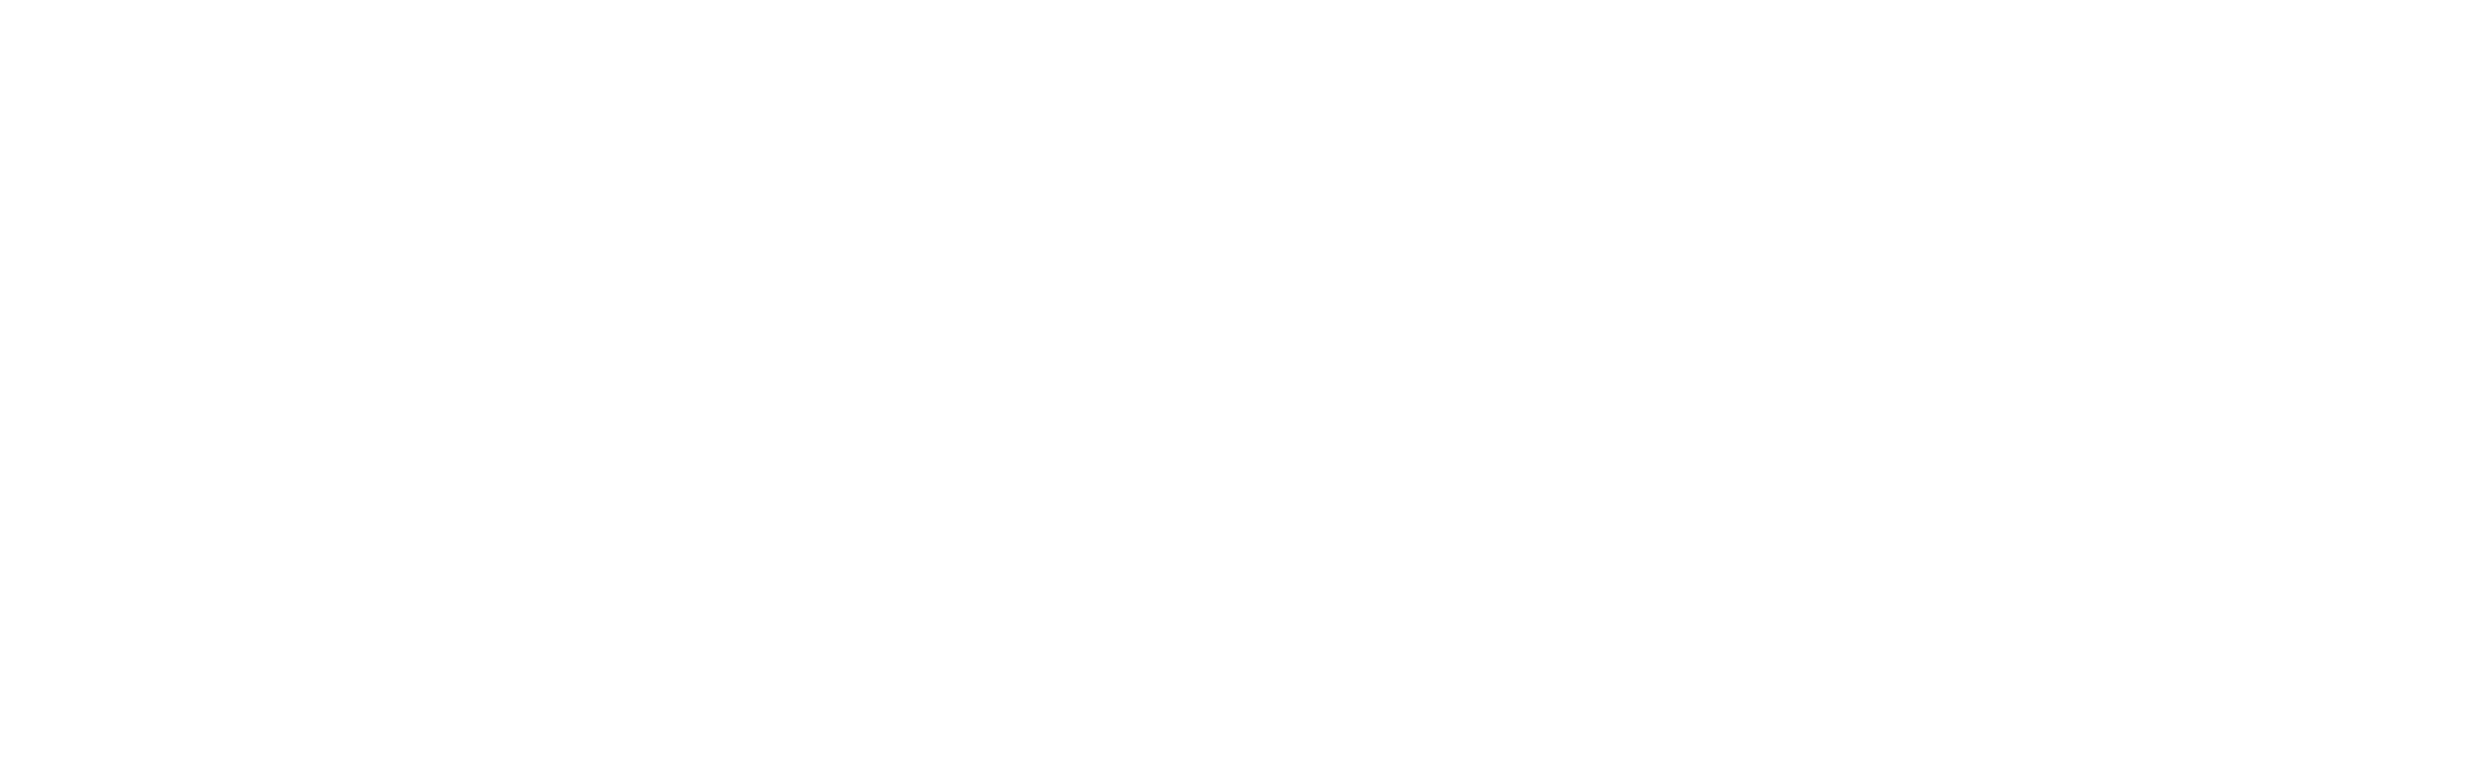 Studio Ninety One logo